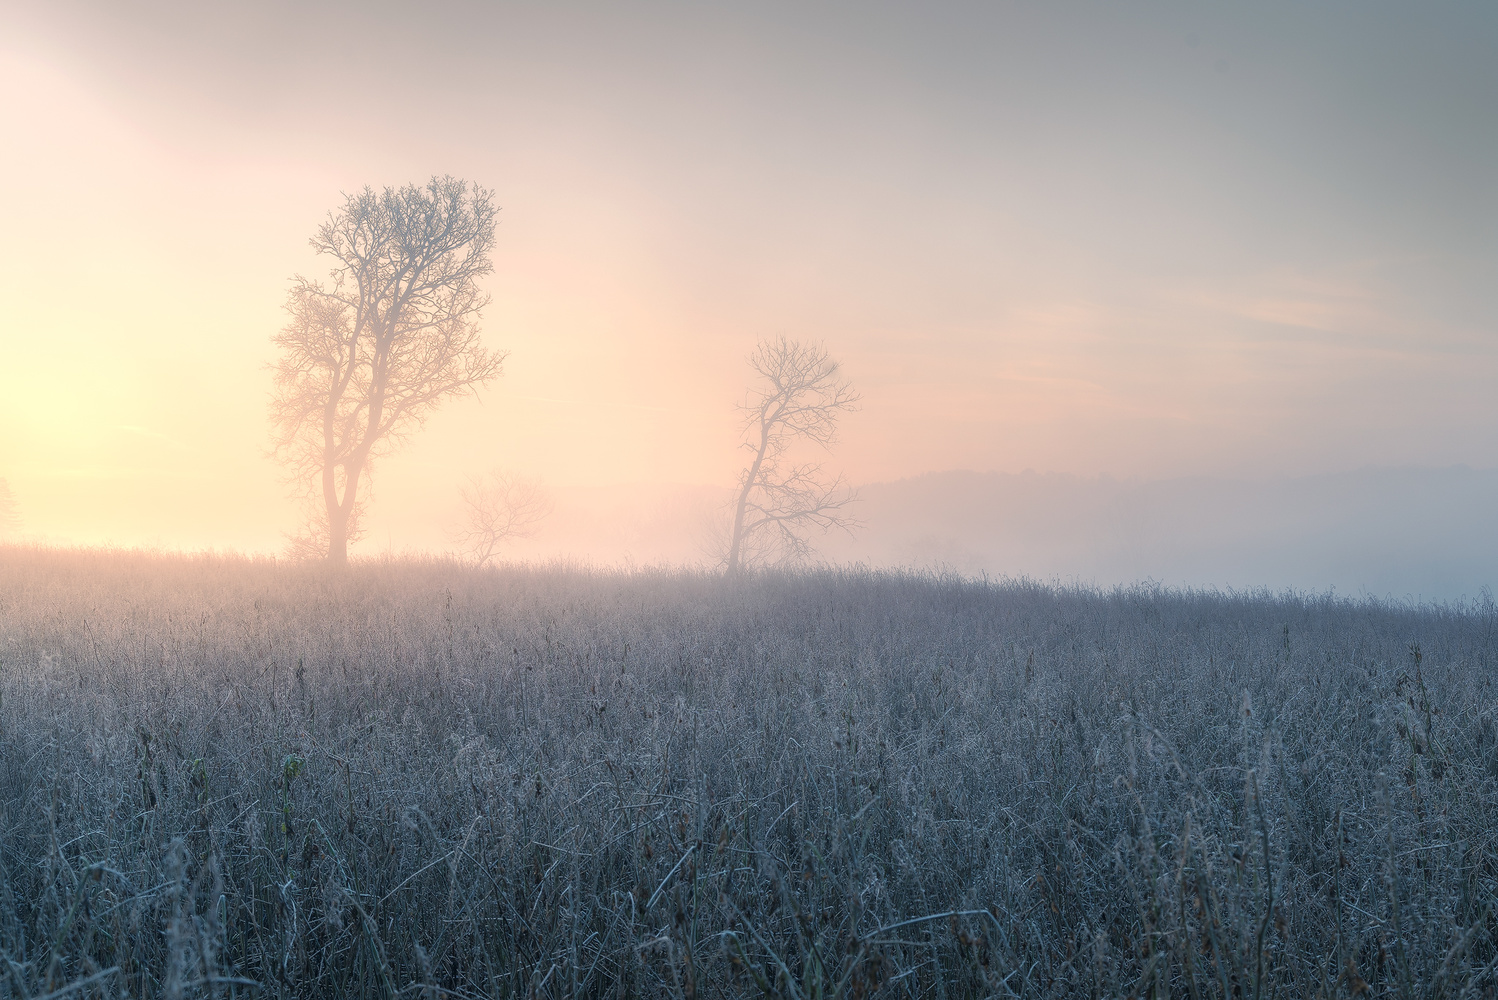 Freezing winter morning by Christian Möhrle